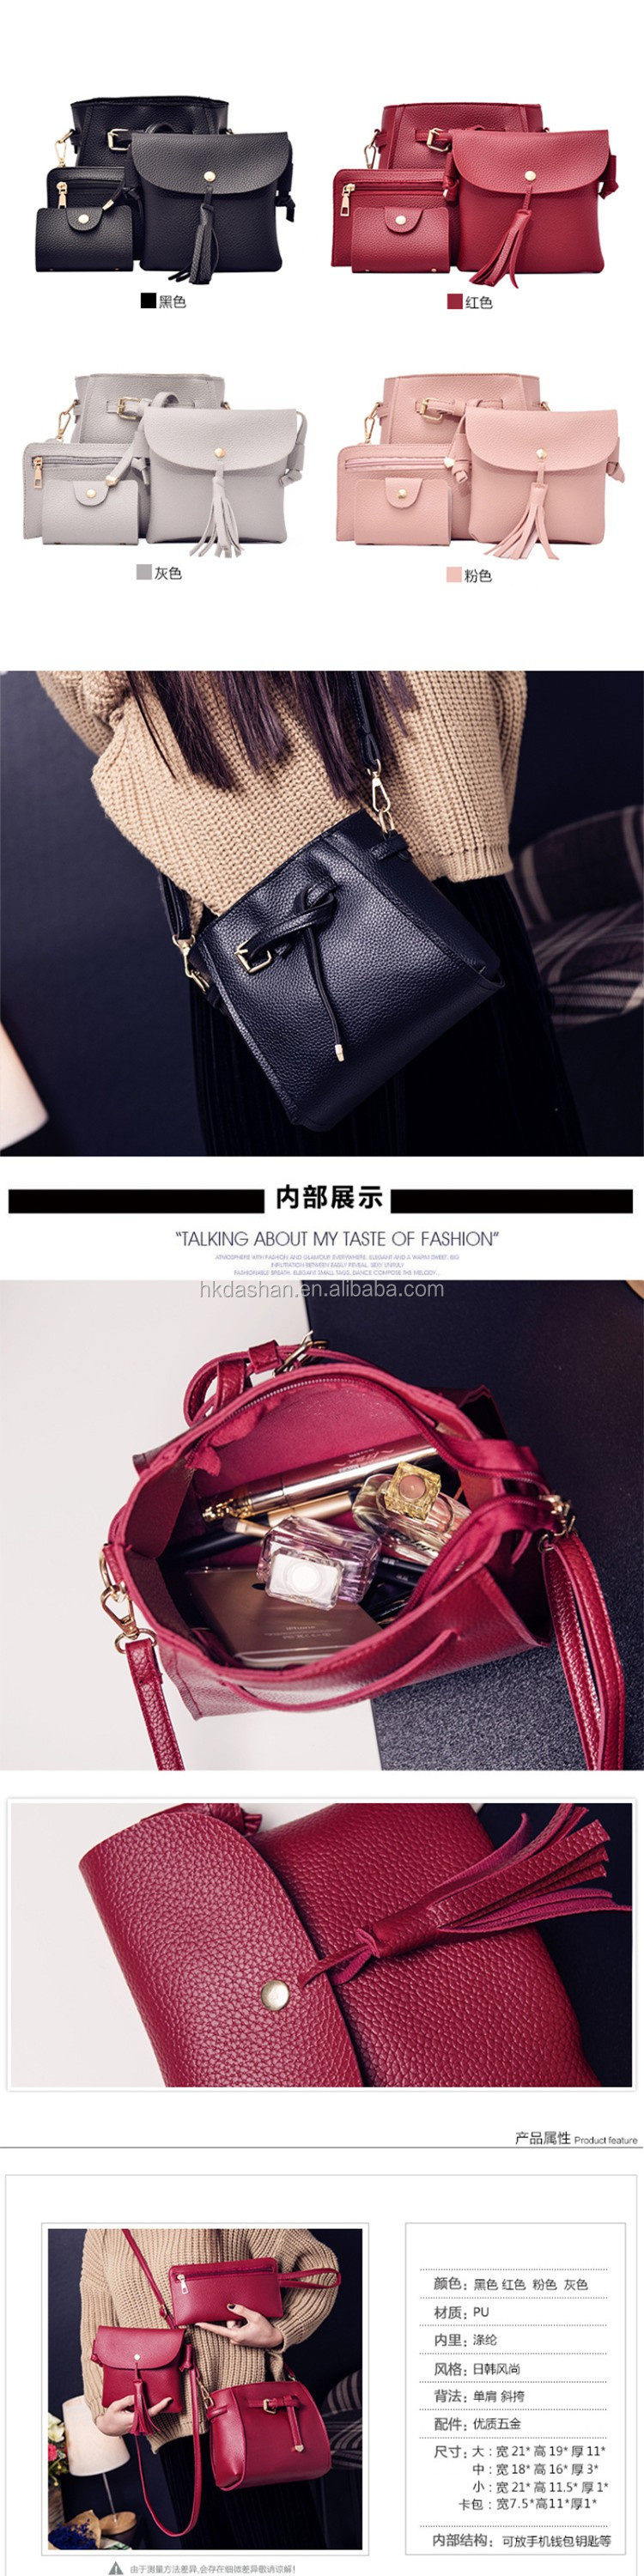 Y 038 Trendy Product Woman Hand Bag Designer Handbags Purses Luxury Las Bags Hot Ing